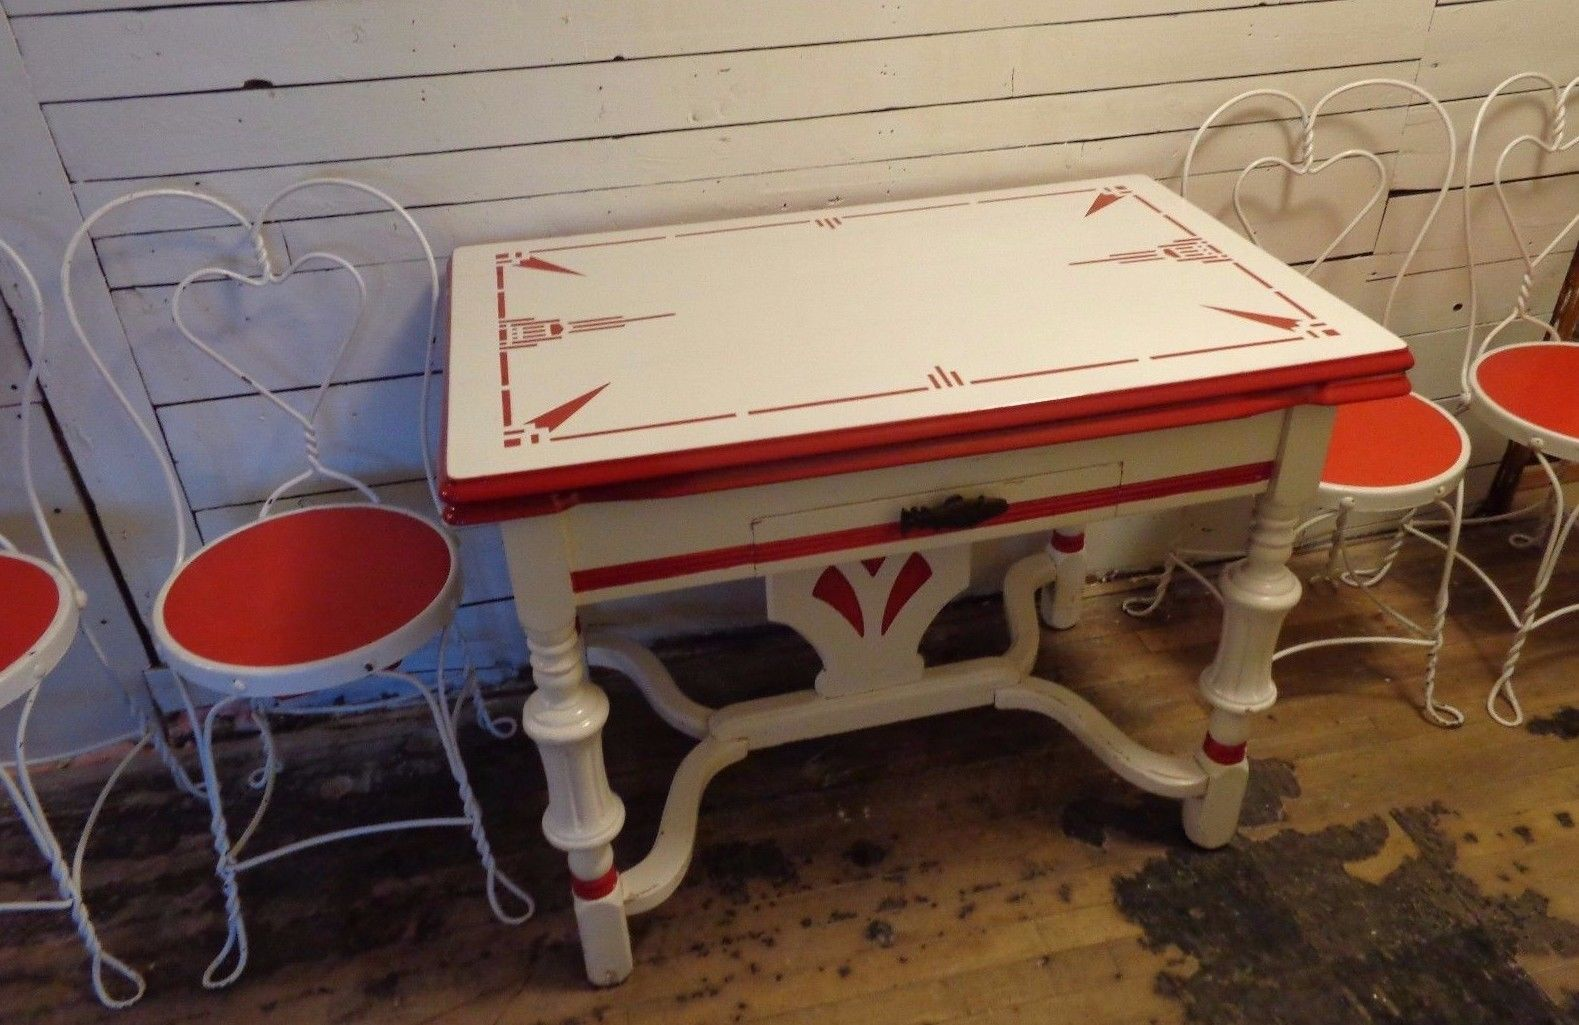 1930s Porcelain Enamel Top Kitchen Dining Table With Chairs Art Deco Set Red Vintage Kitchen Table Dining Table In Kitchen Art Chair